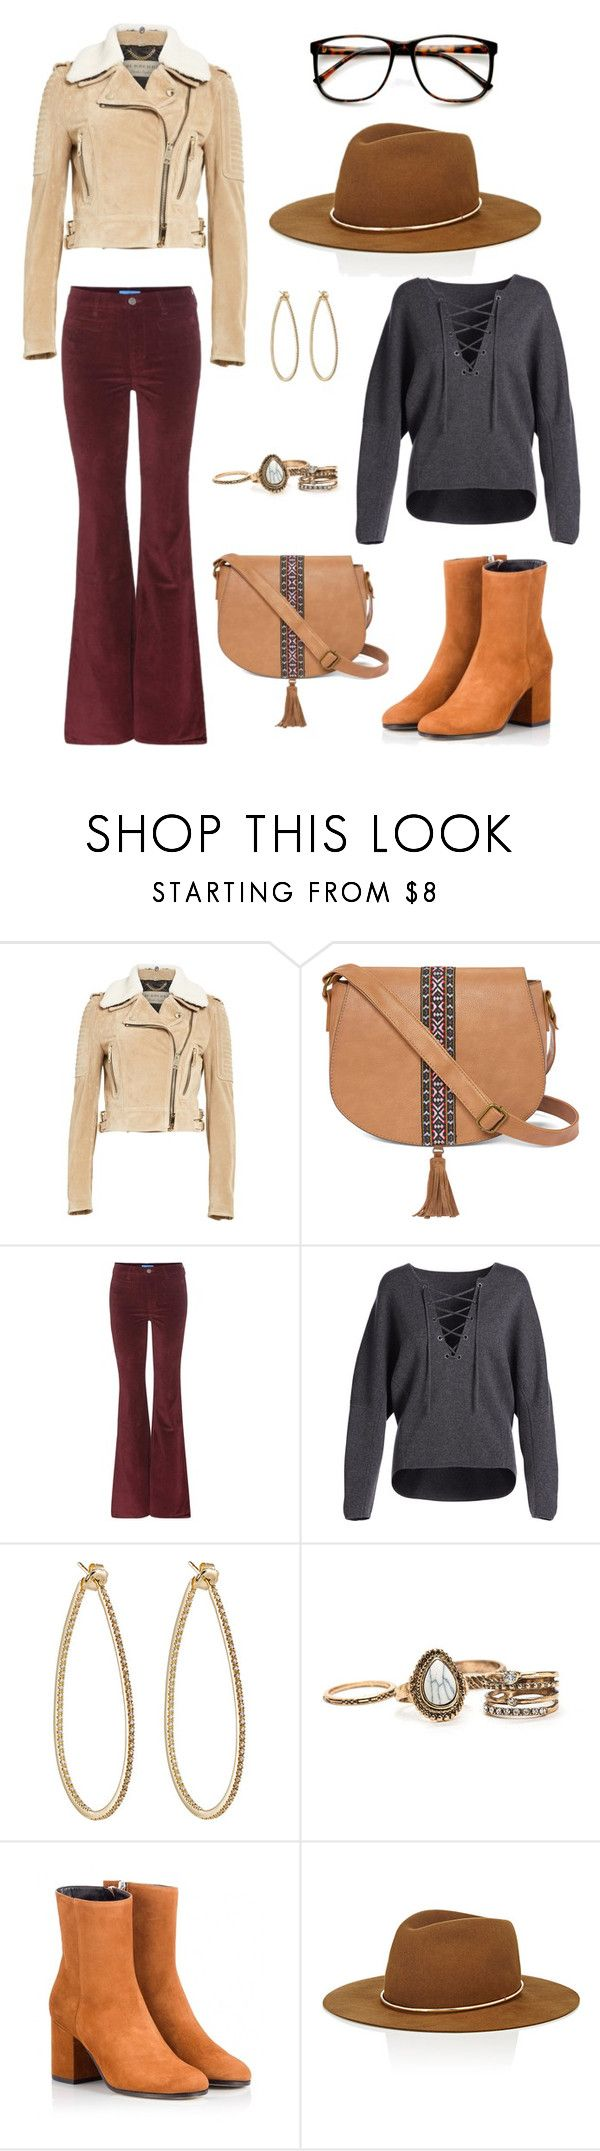 """""""College style # 10"""" by thatnerdgirlruns4themadmaninabox ❤ liked on Polyvore featuring Burberry, T-shirt & Jeans, M.i.h Jeans, Vince, Sidney Garber, Fratelli Karida, Janessa Leone and ZeroUV"""